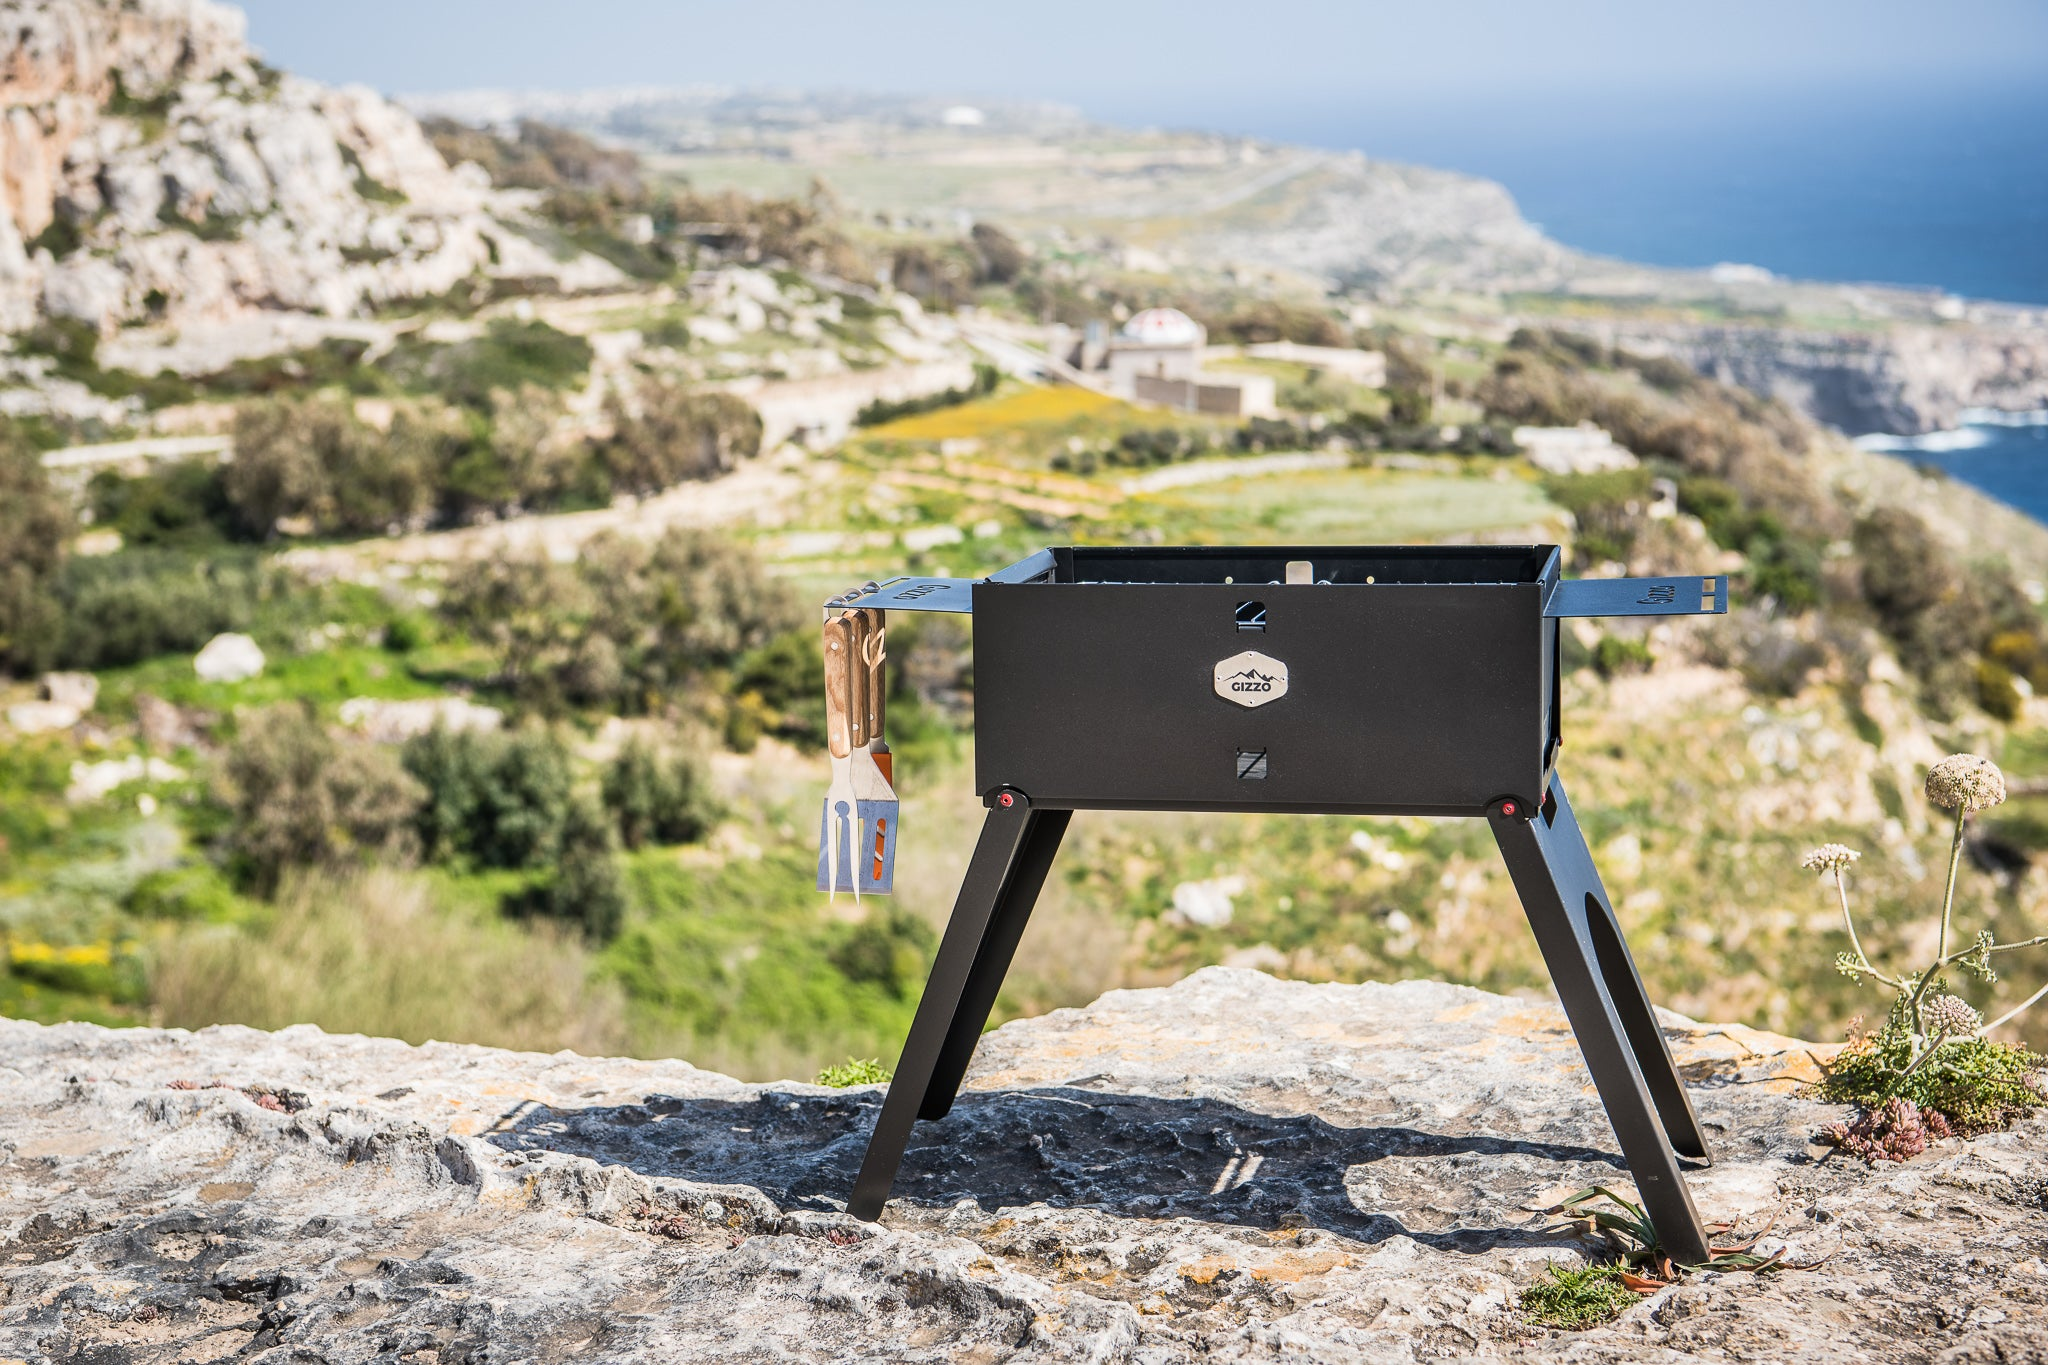 Gizzo Grill – Foldable, Portable, Reliable